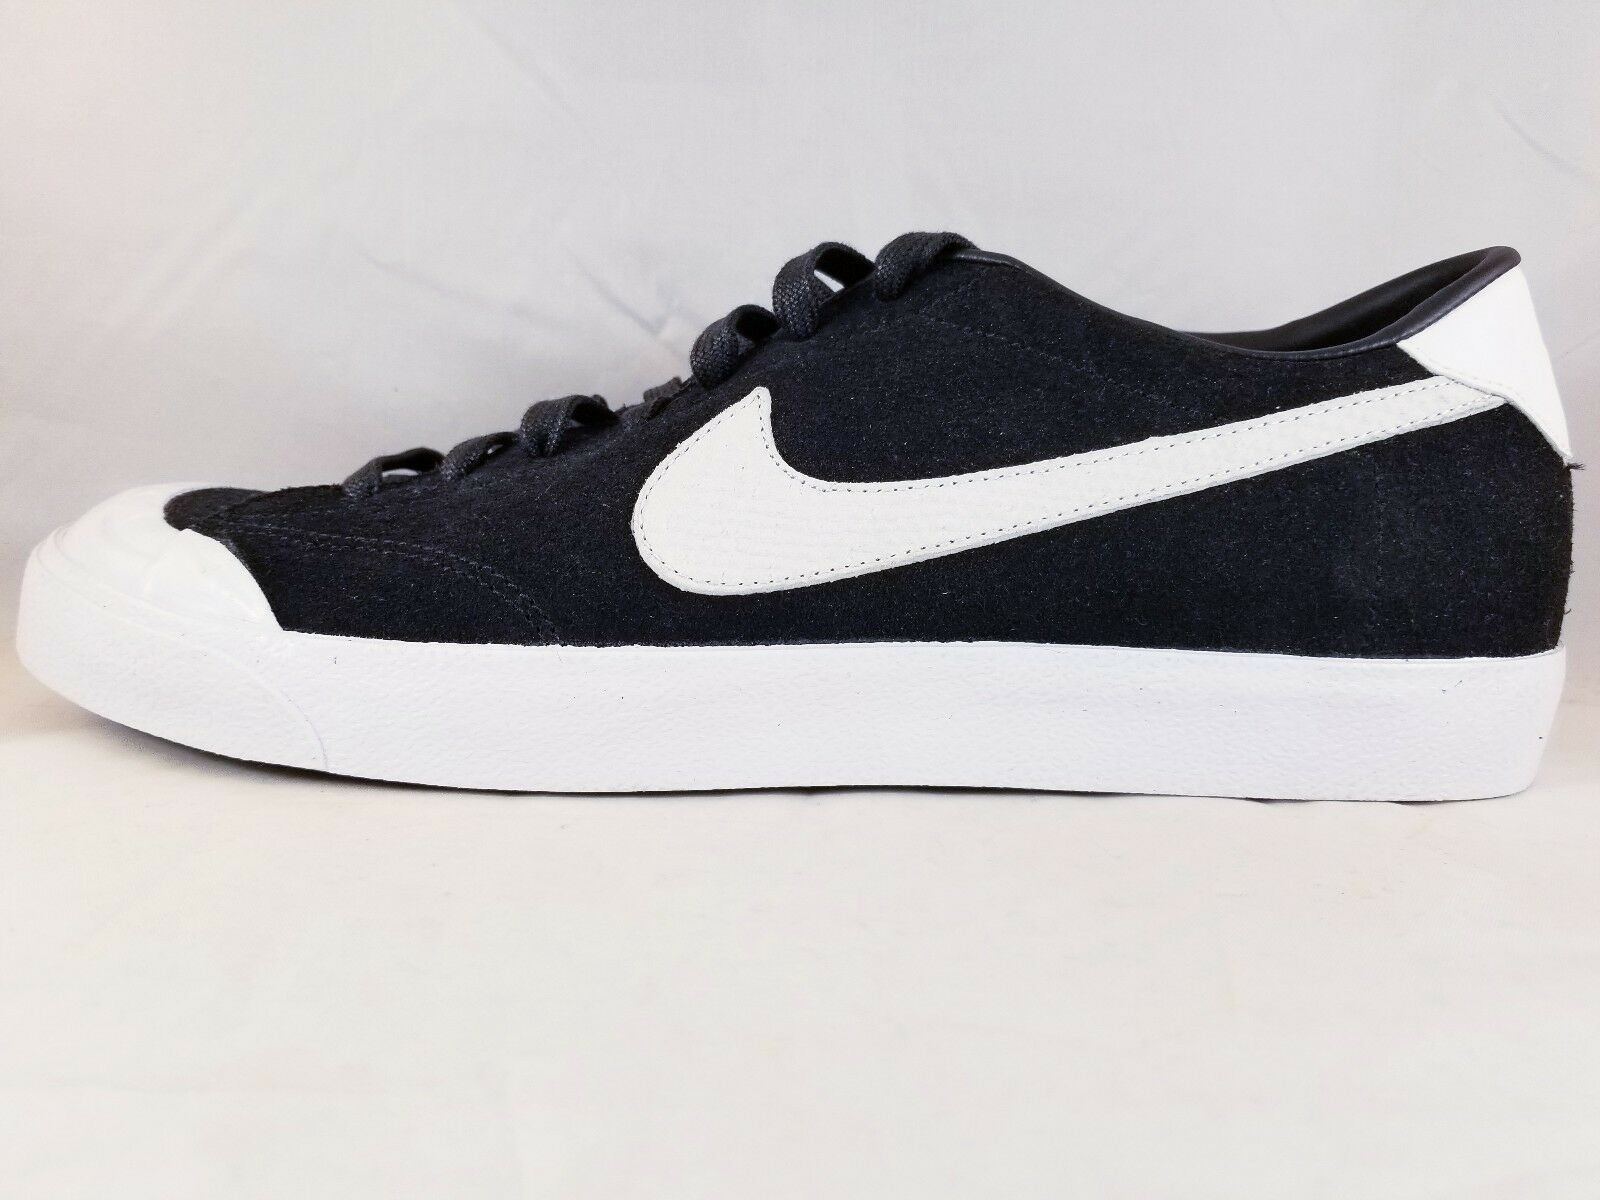 nike zoom tous hommes 811252 811252 811252 ck sq skate chaussure taille 12 001 788859